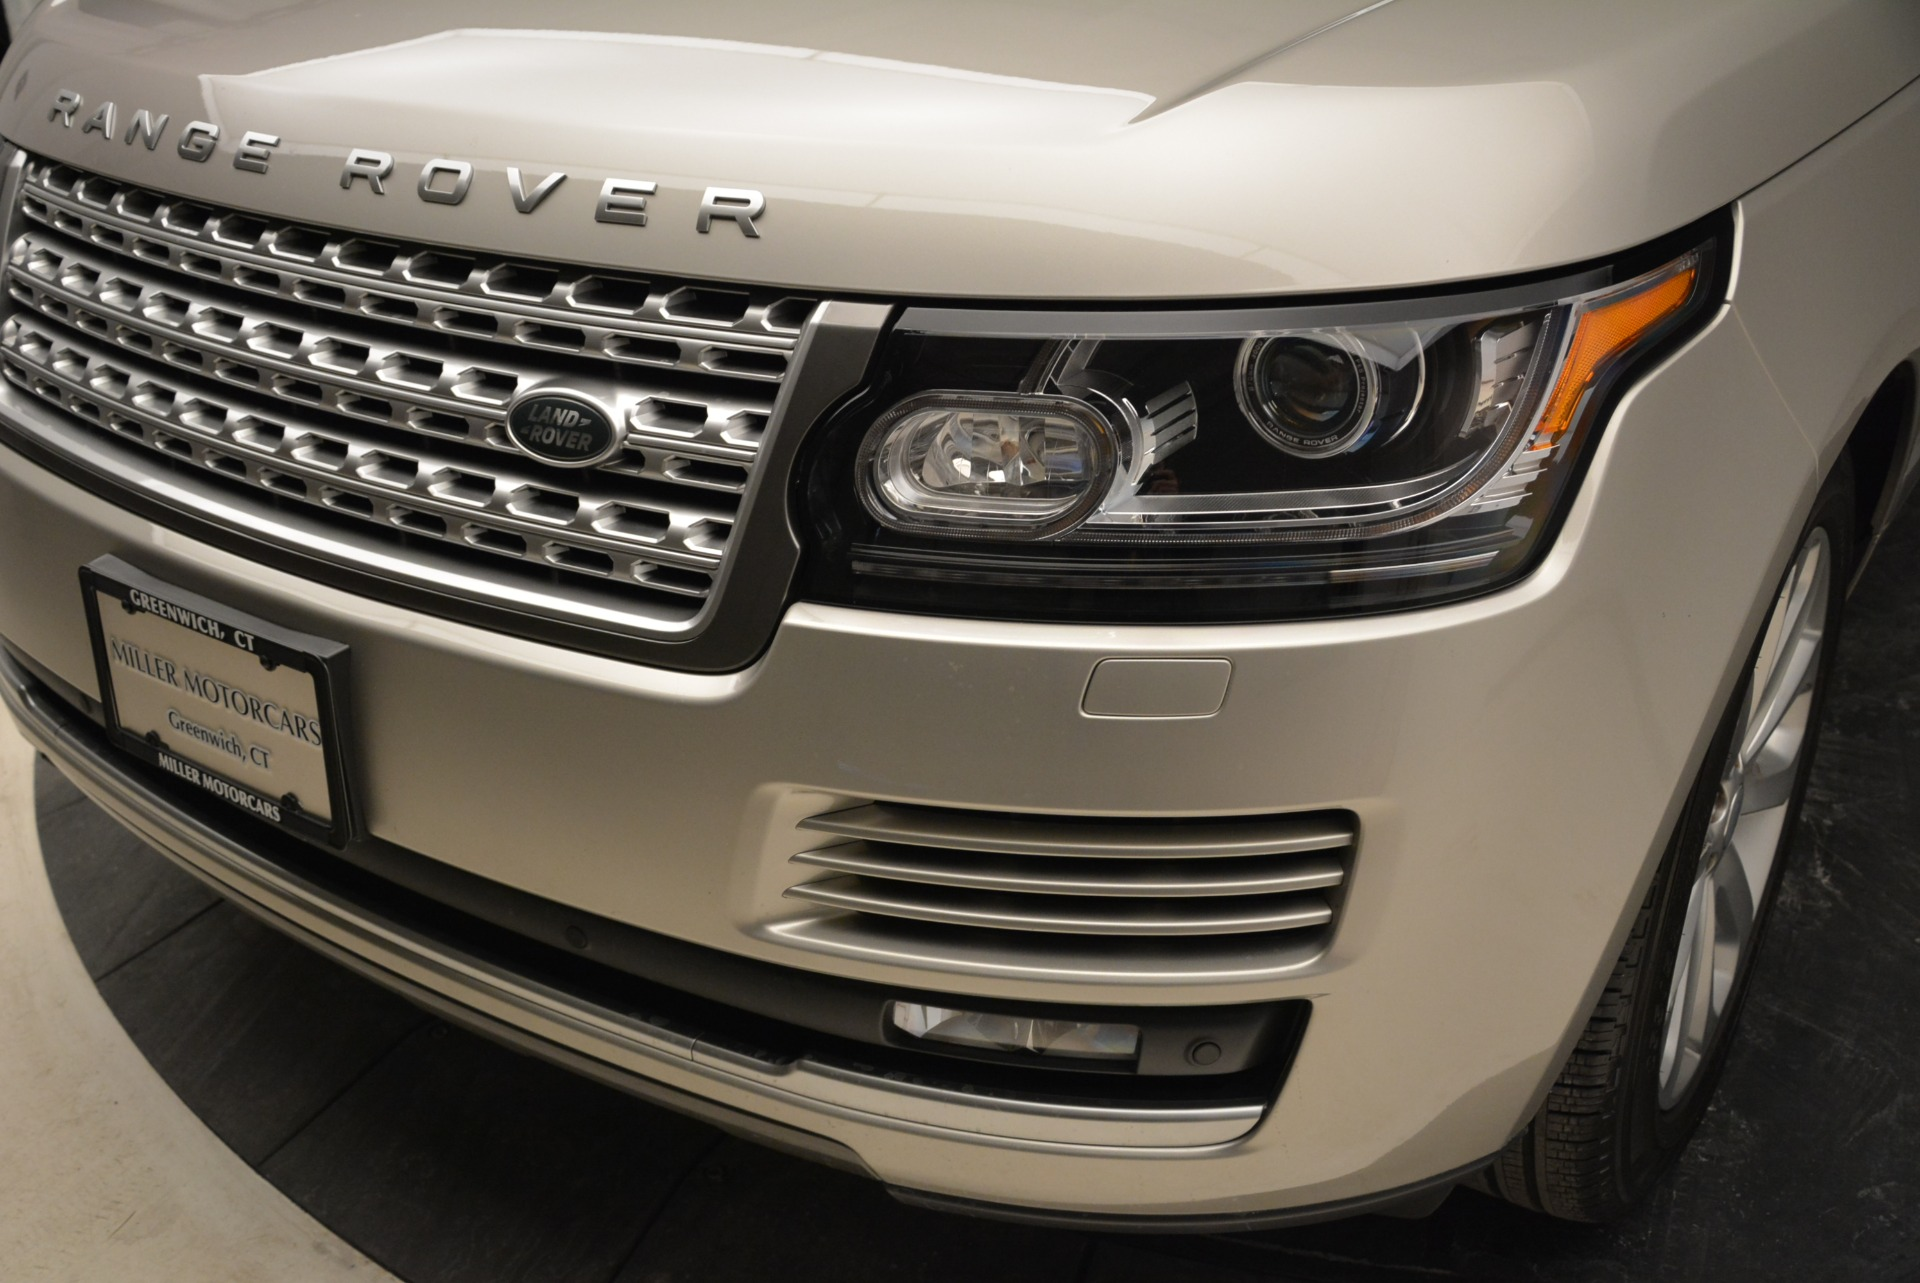 Used 2016 Land Rover Range Rover HSE For Sale In Greenwich, CT 1962_p14